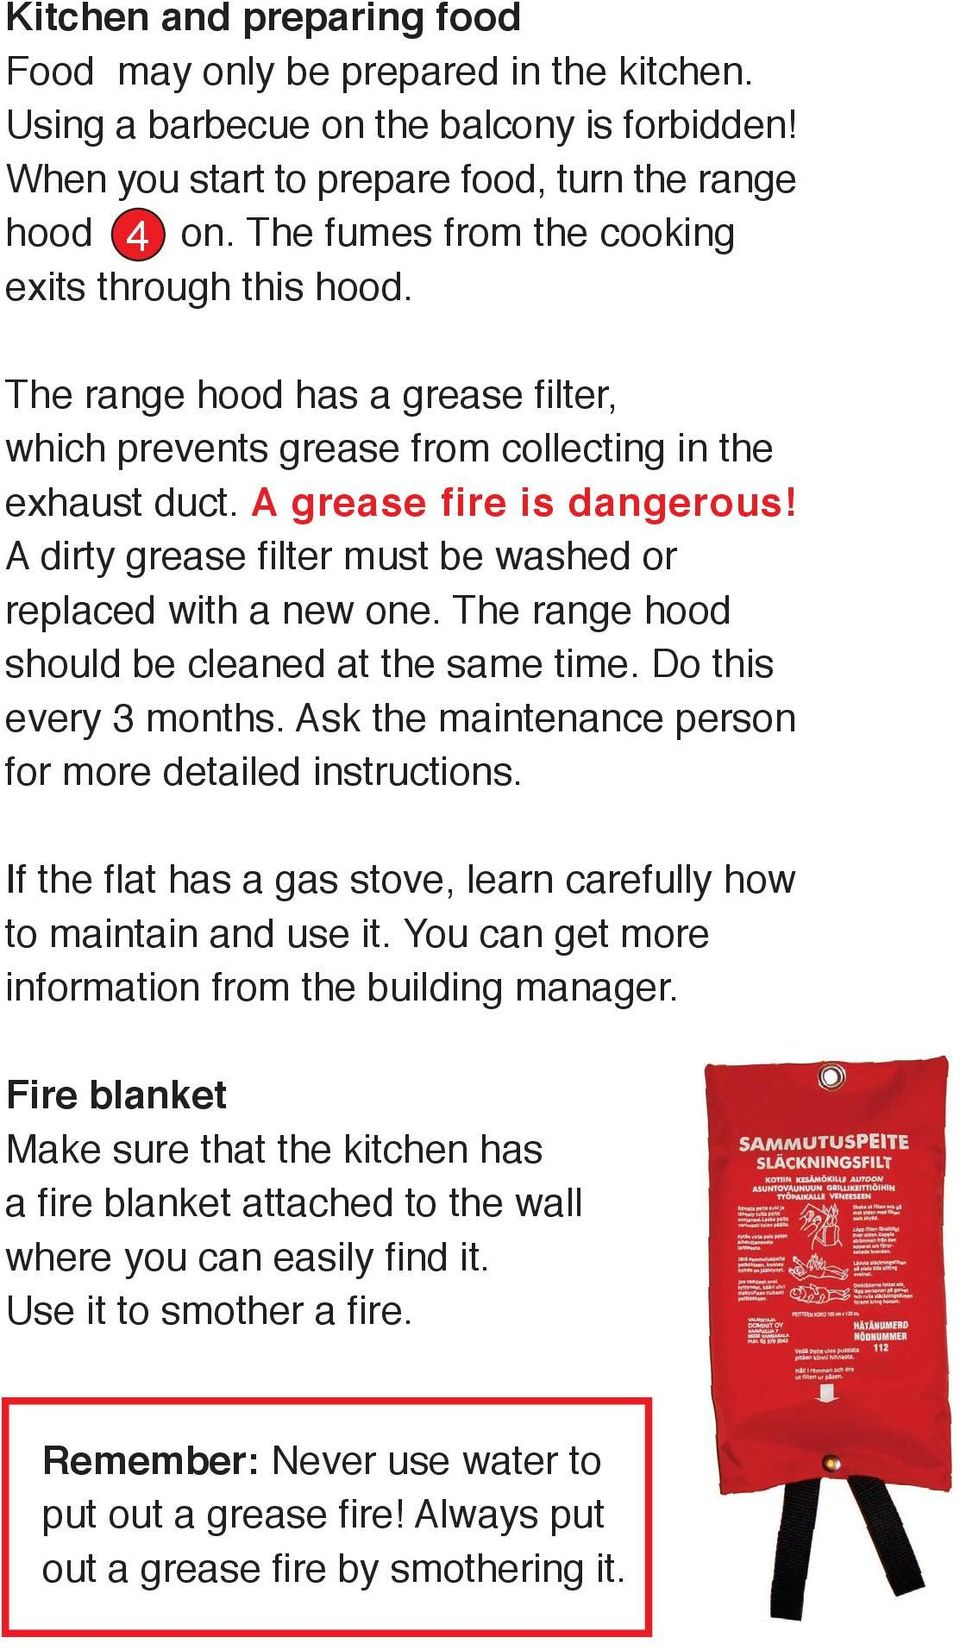 A dirty grease filter must be washed or replaced with a new one. The range hood should be cleaned at the same time. Do this every months. Ask the maintenance person for more detailed instructions.